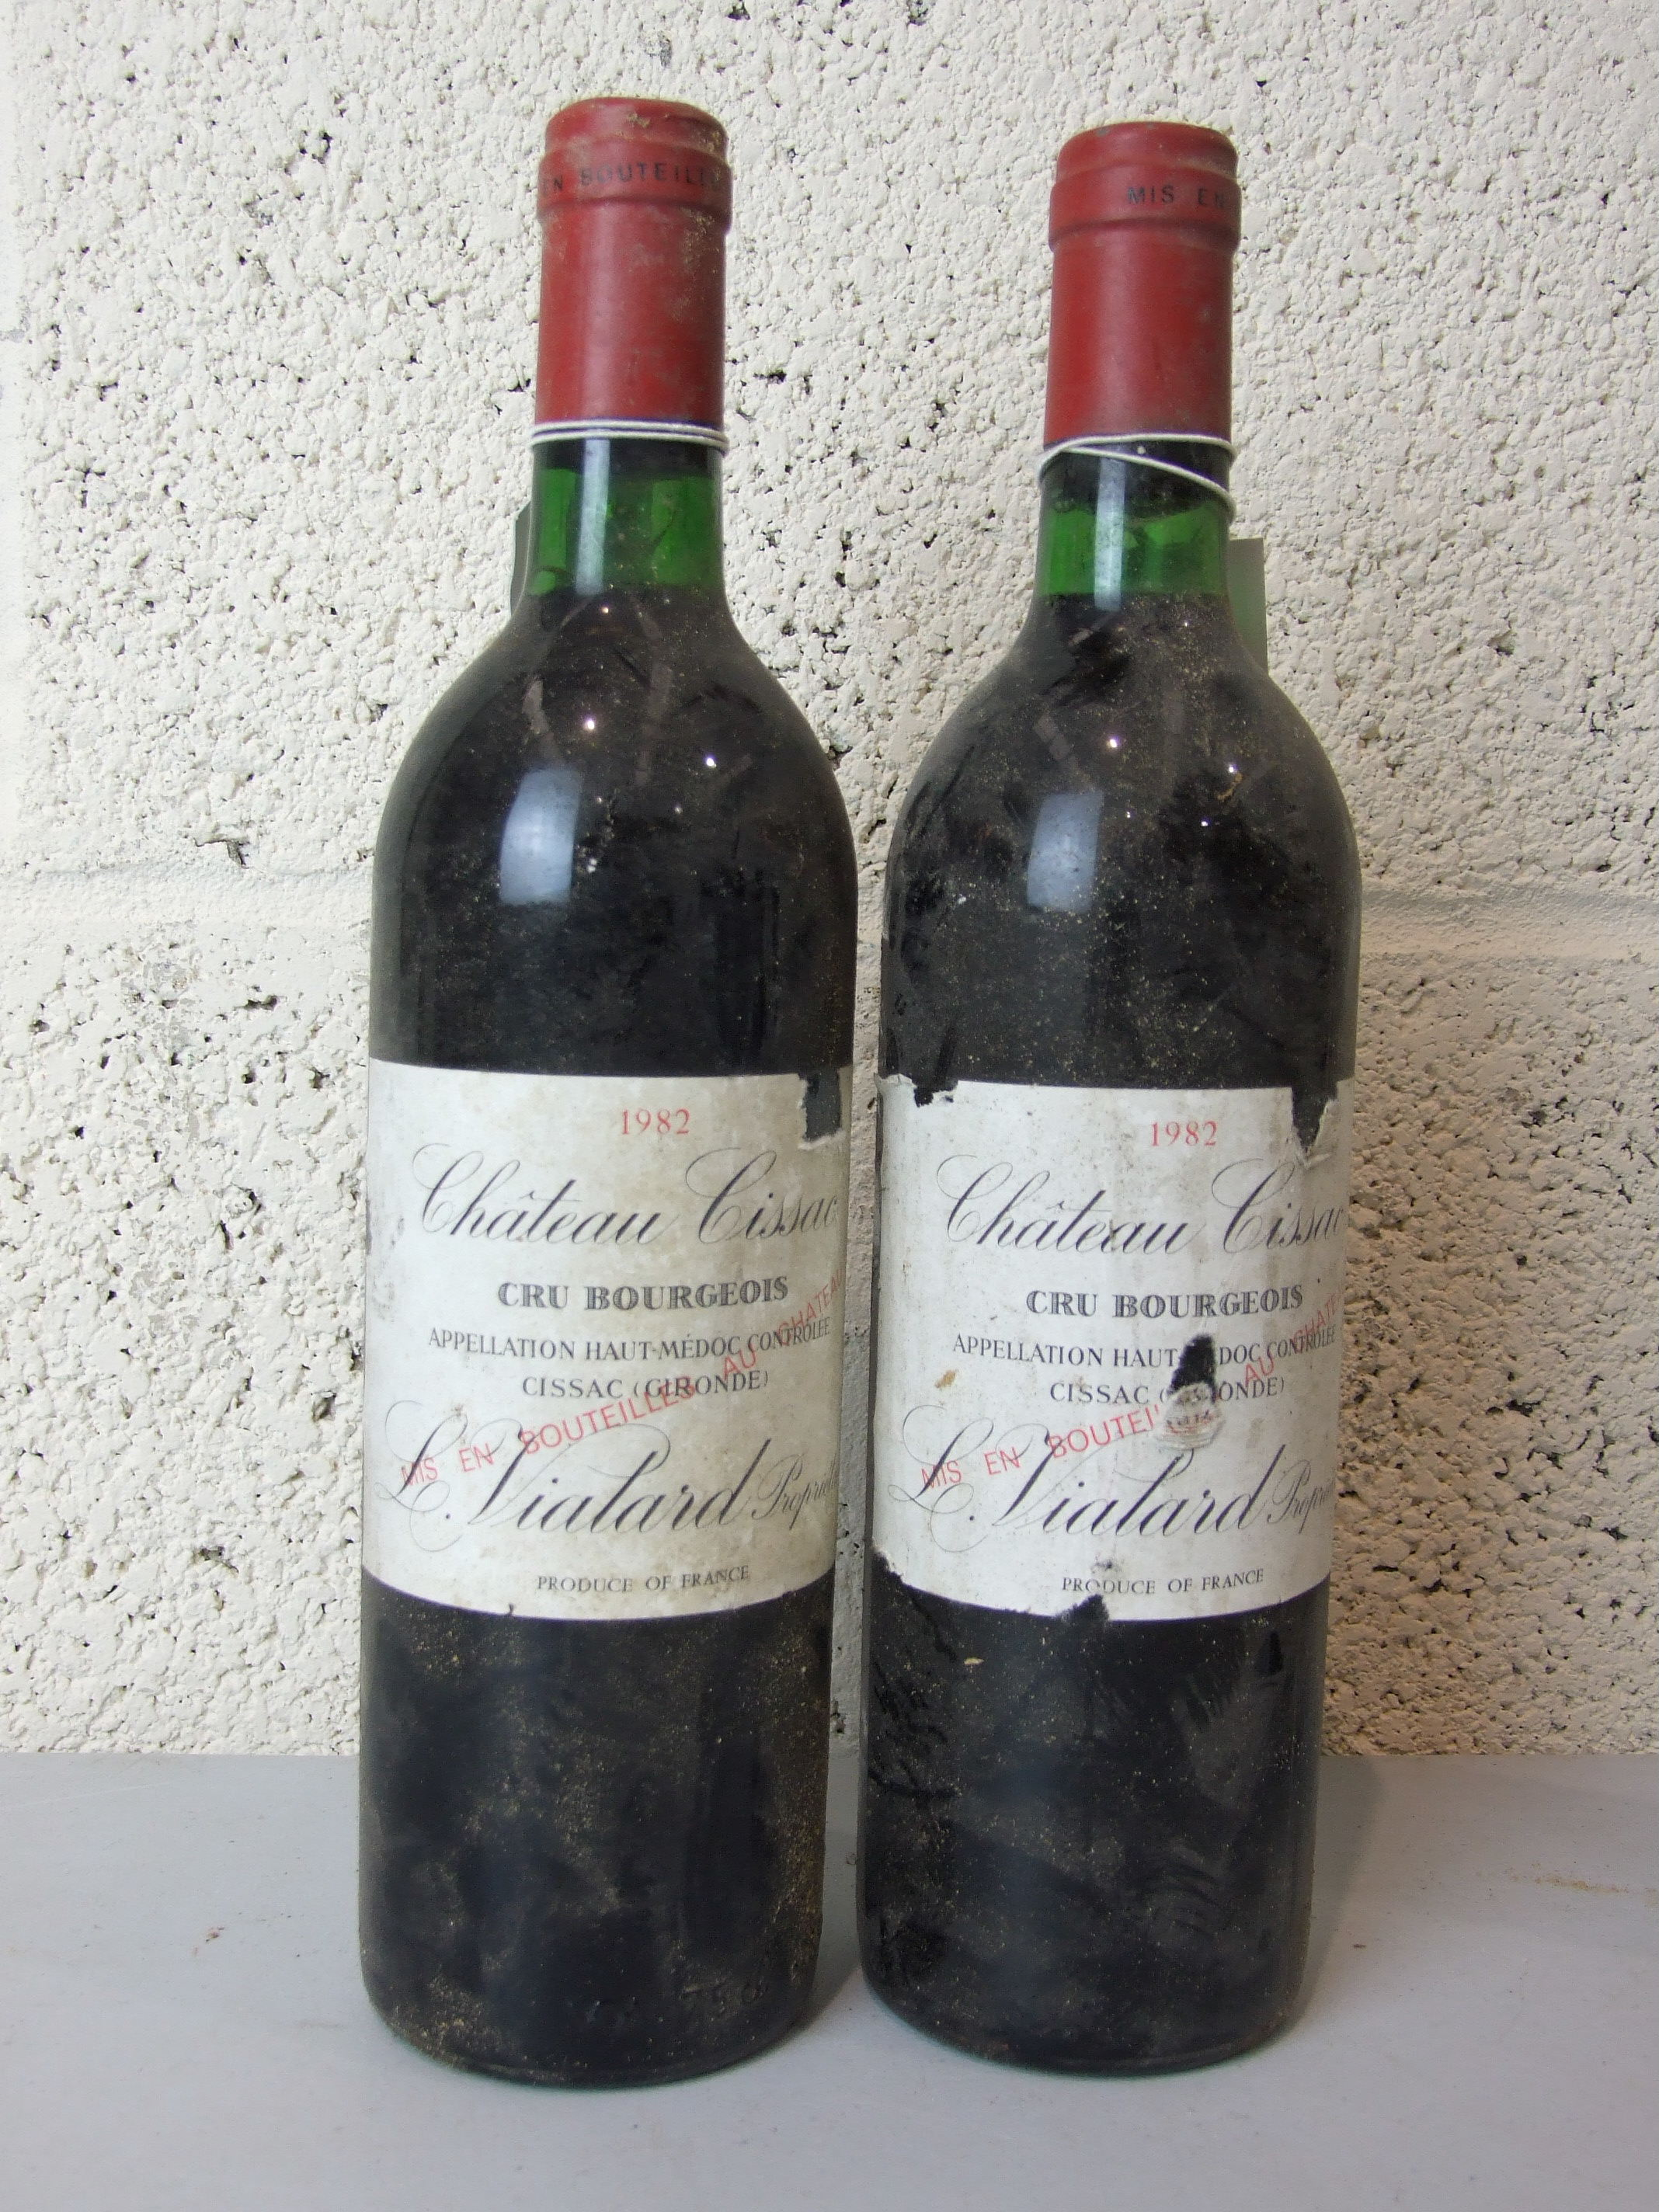 Lot 7 - France, Chateau Cissac Haut Medoc Cru Bourgeois 1982, two bottles, (2).